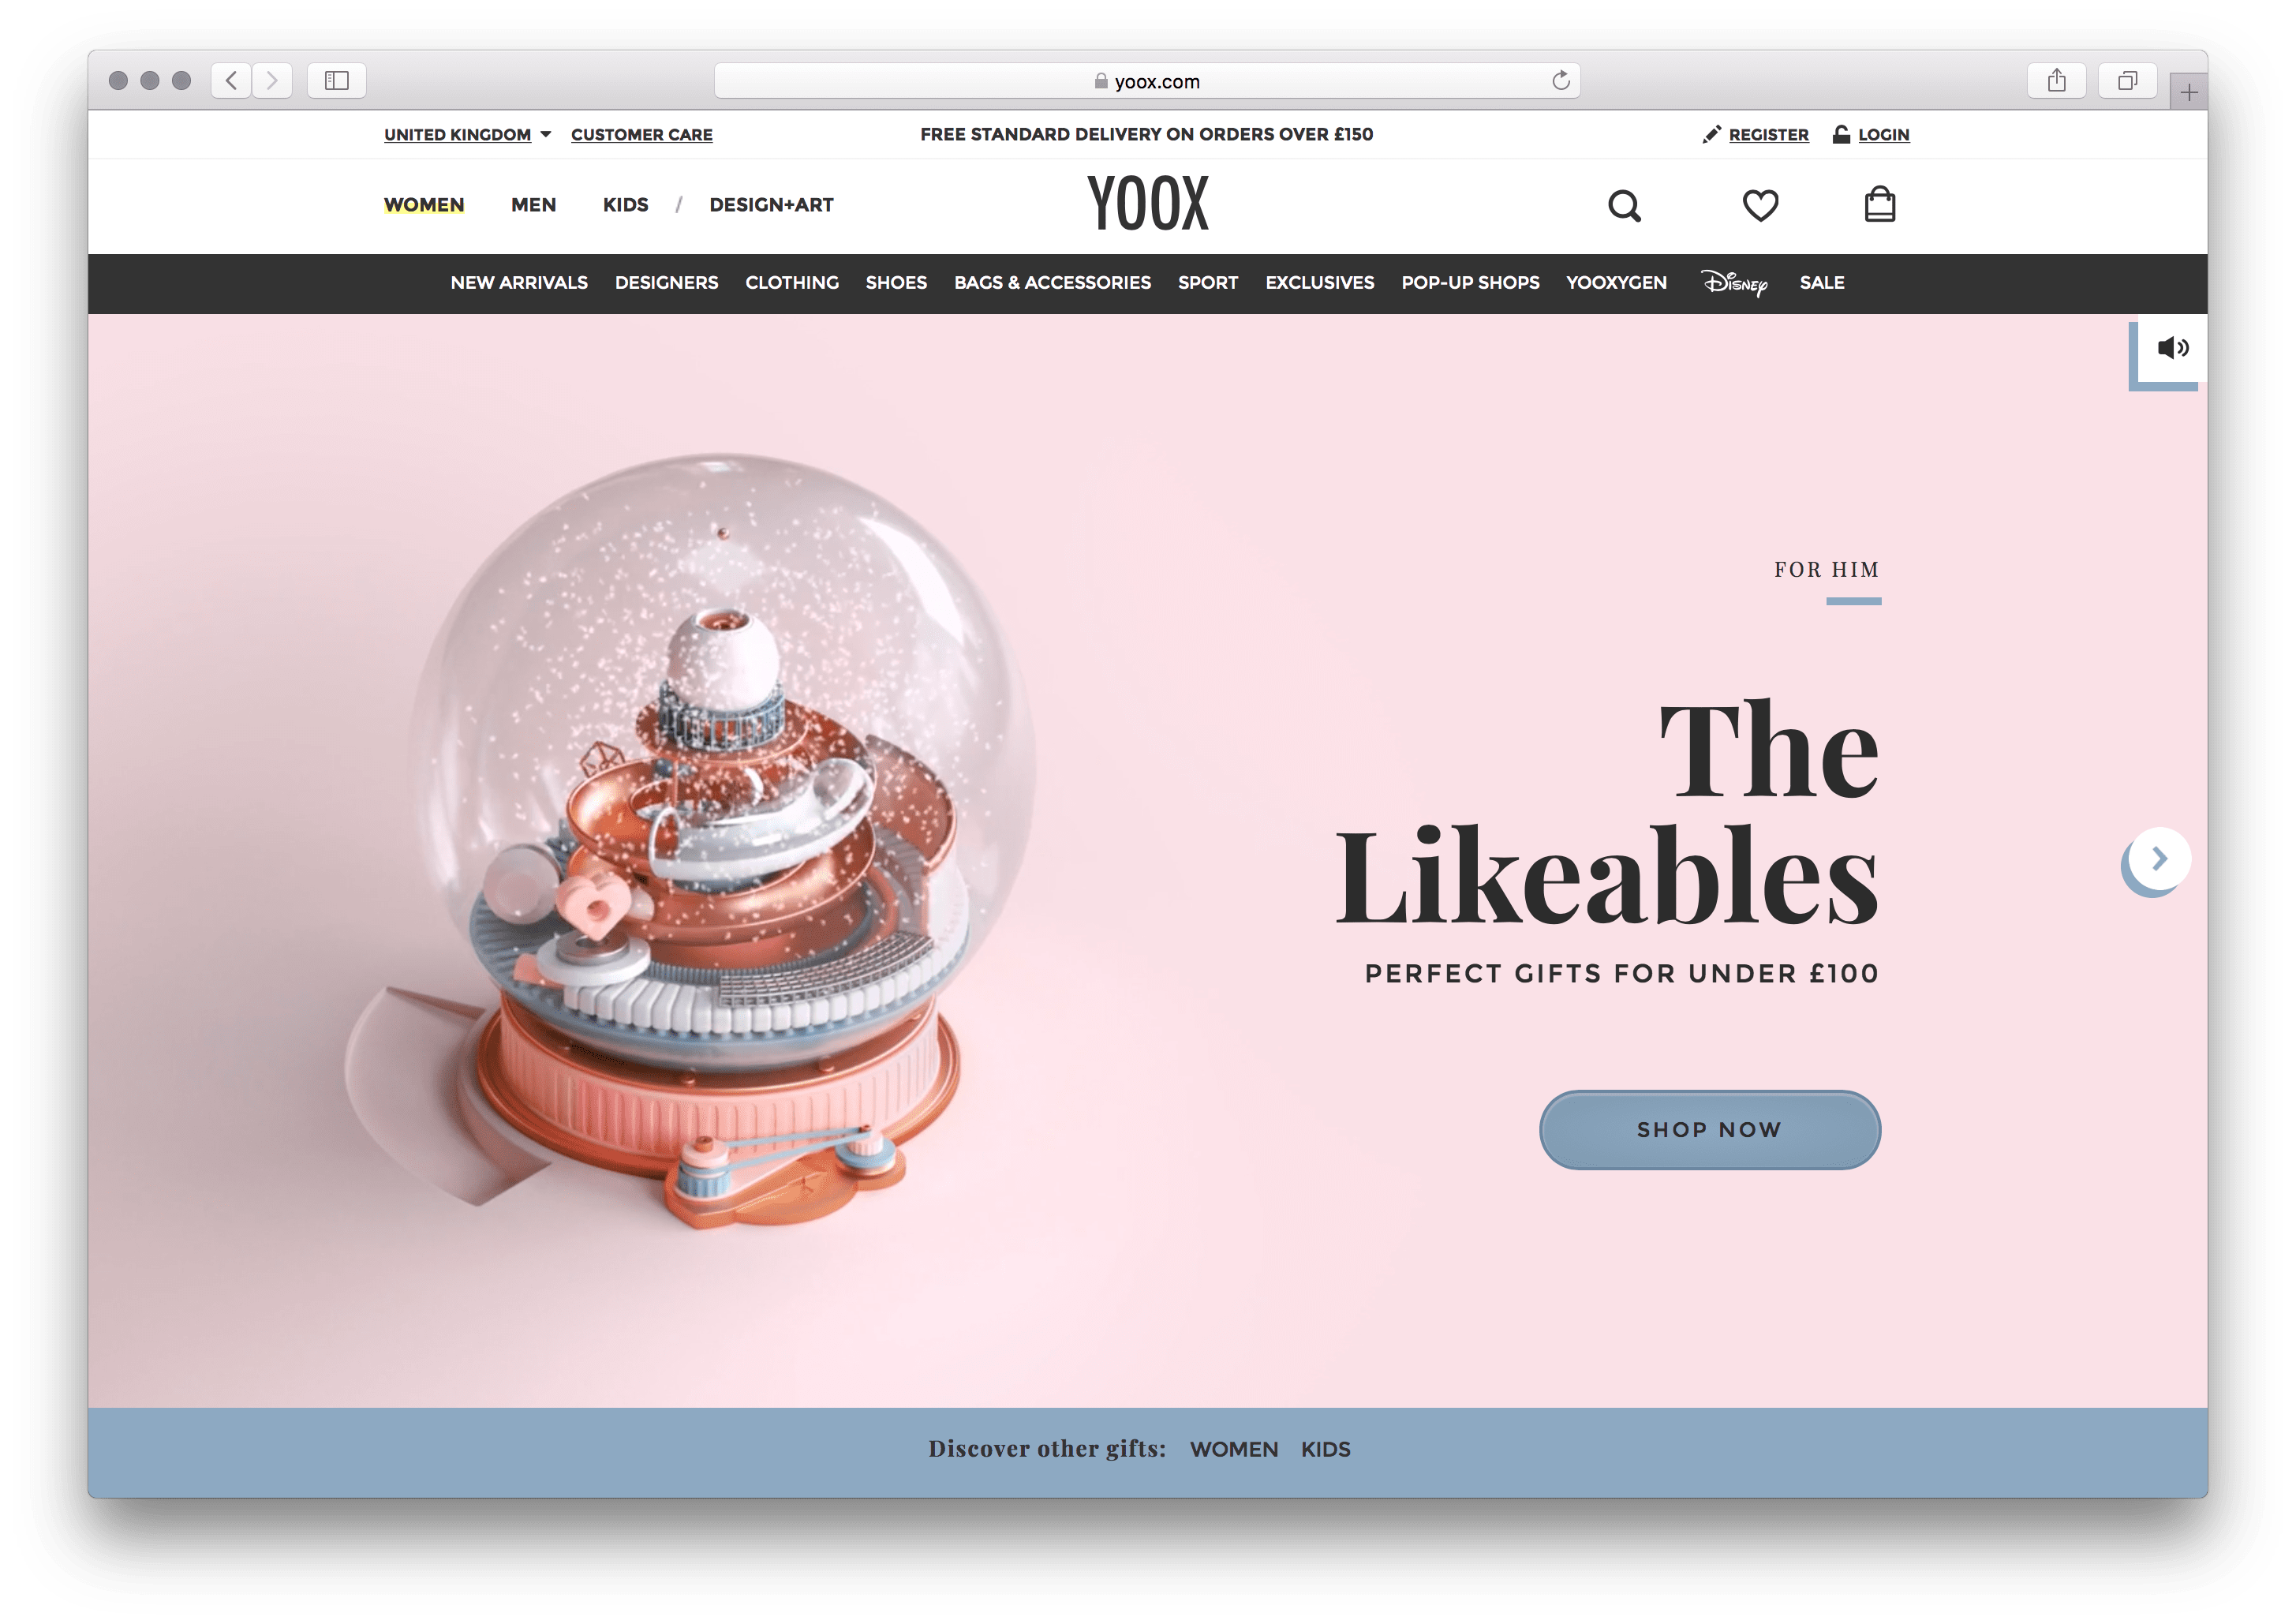 yoox-3D-design-inspiration-globe-campaign-gifts-ecommerce-website-web